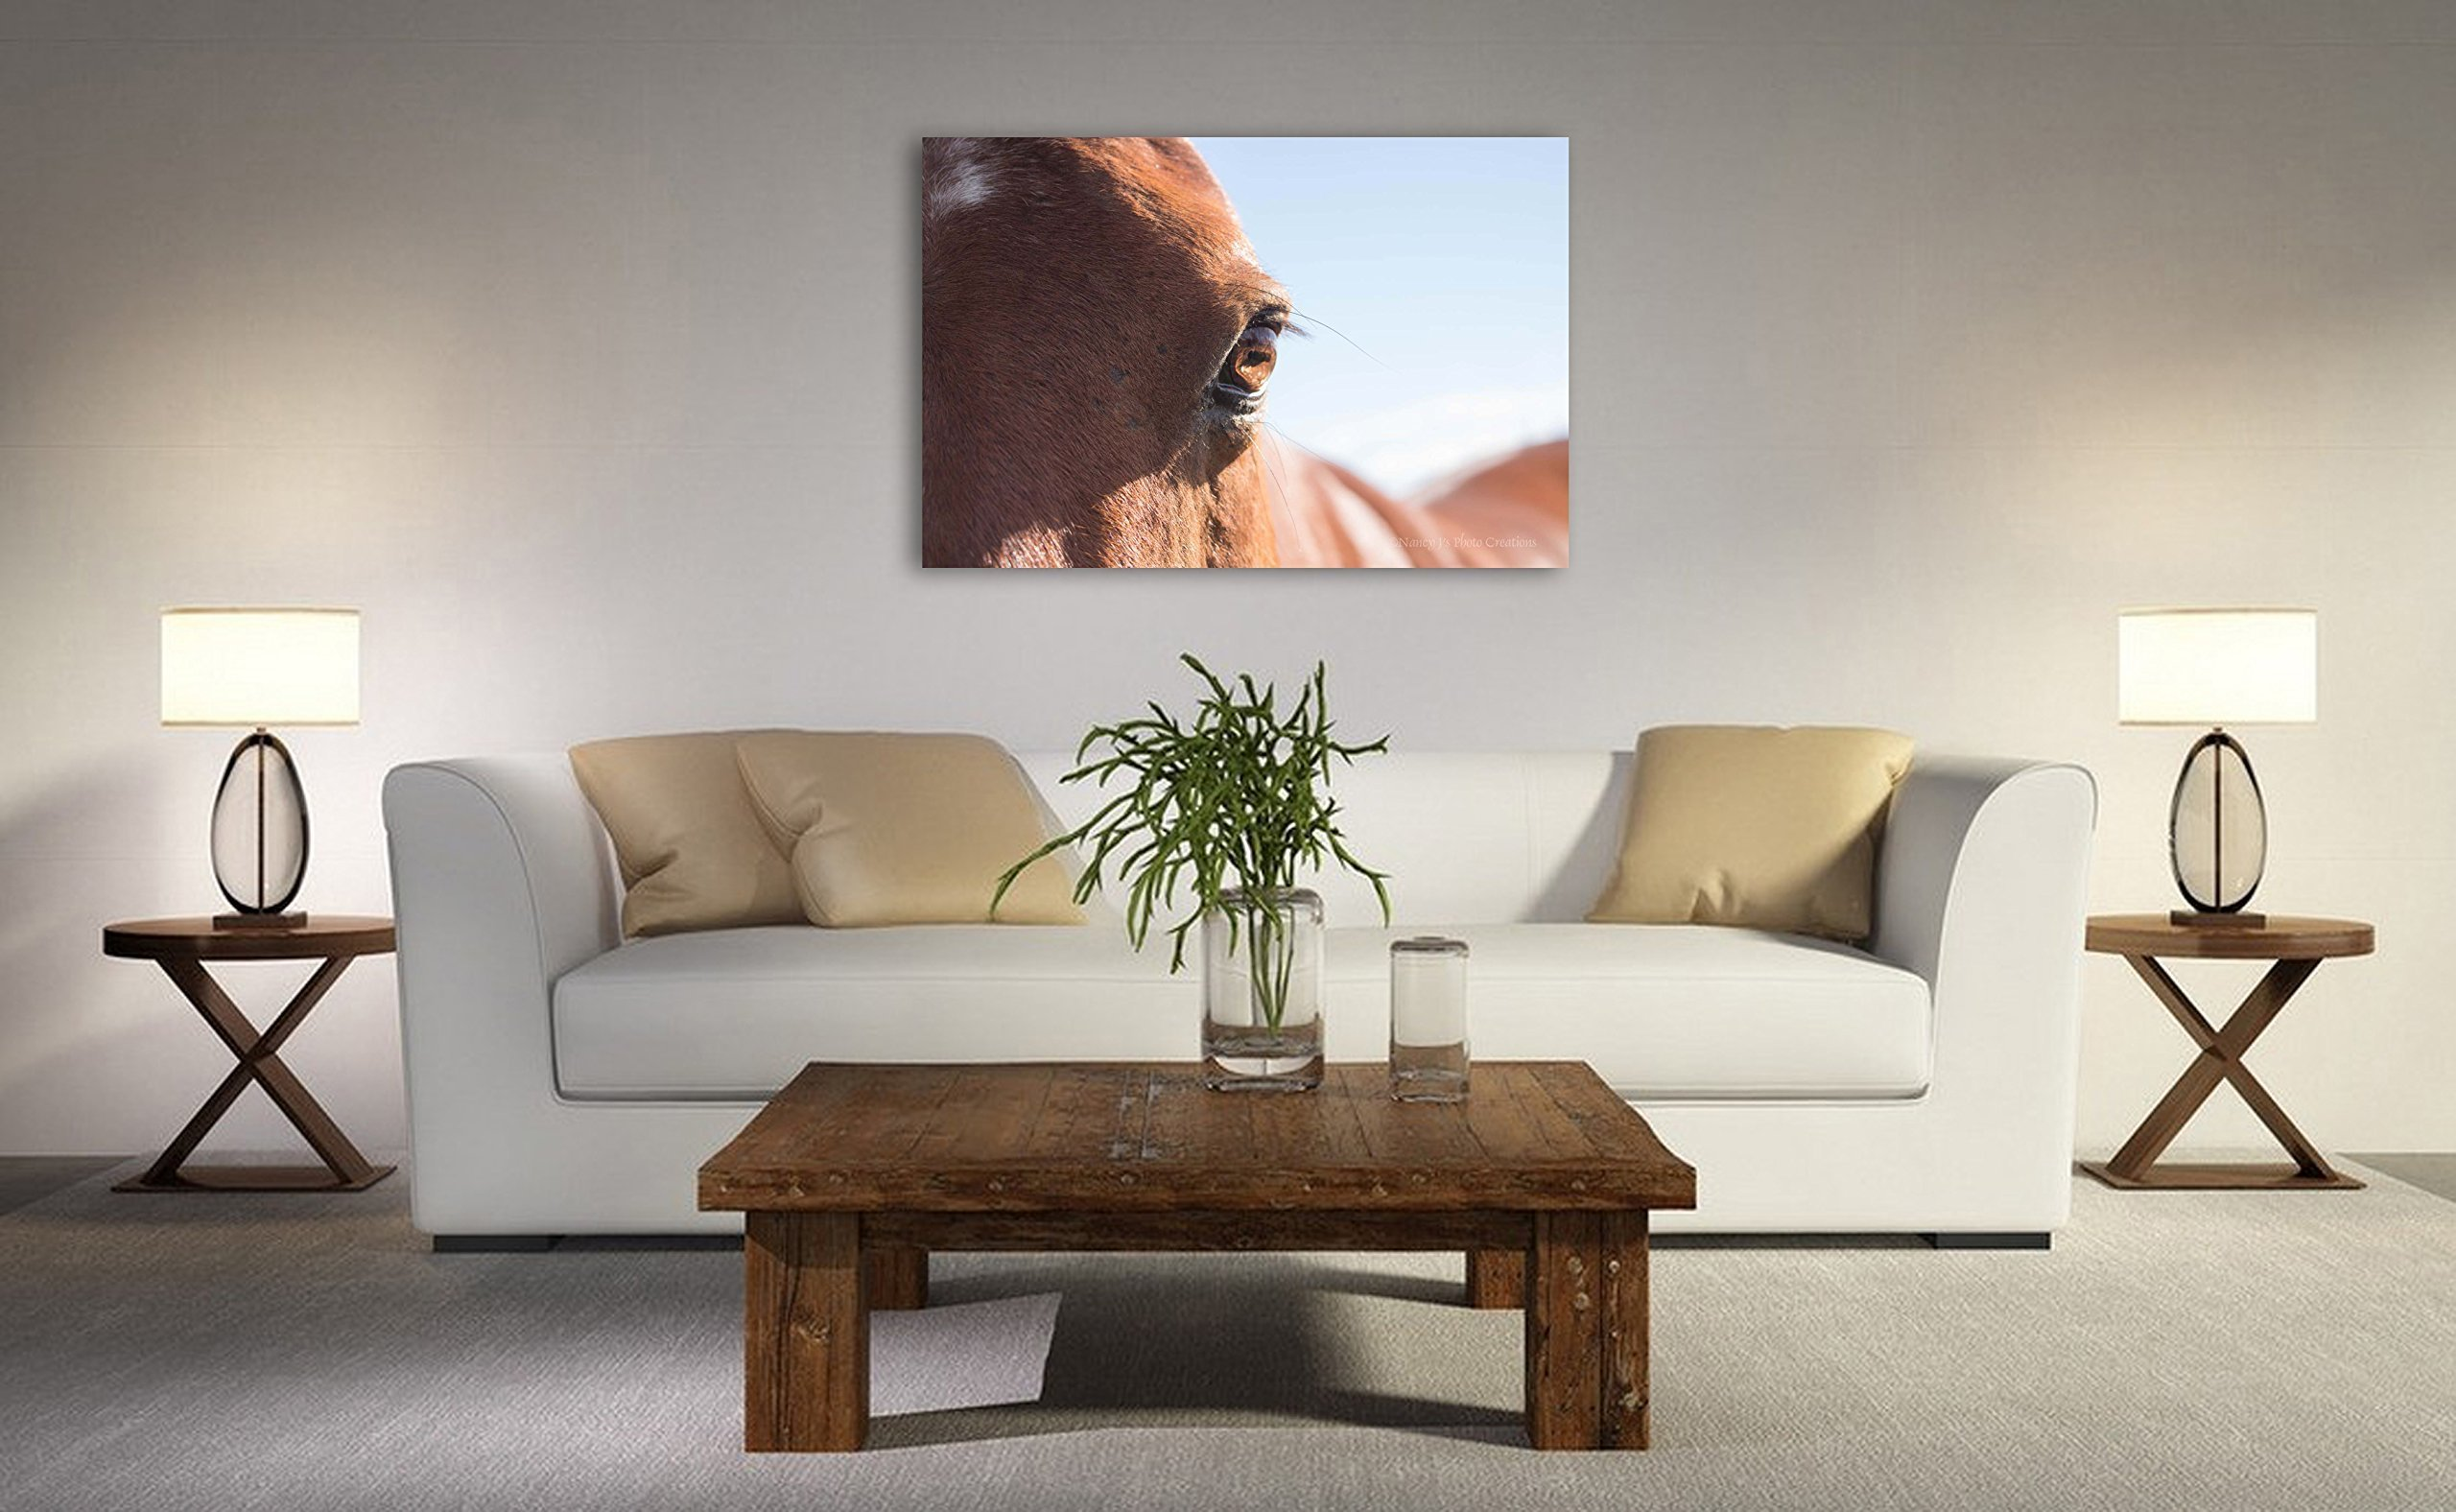 Equine Photo on CANVAS Horse Photography Fine Art Print Girl's Room Wall Decor Brown Animal Picture Minimalist Photograph Ready to Hang 8x10 8x12 11x14 12x18 16x20 16x24 20x30 24x36 by Nancy J's Photo Creations